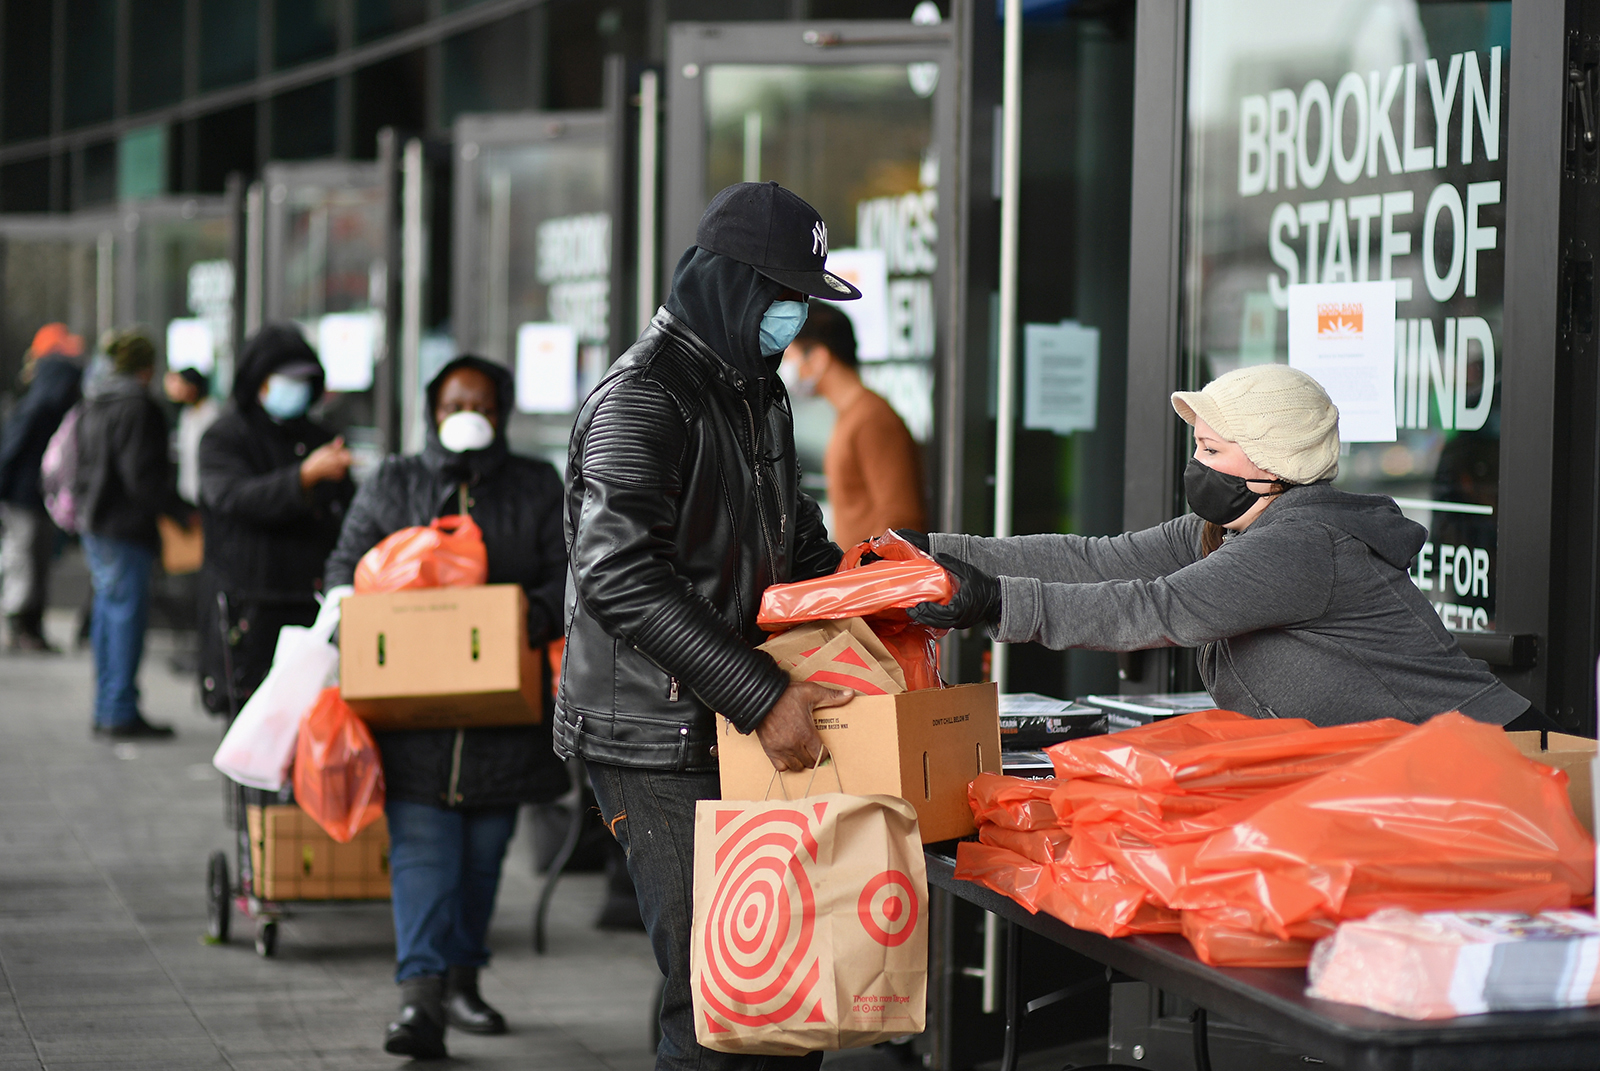 People wait in line at a food bank on the Barclays Center plaza in Brooklyn, New York, on April 24.